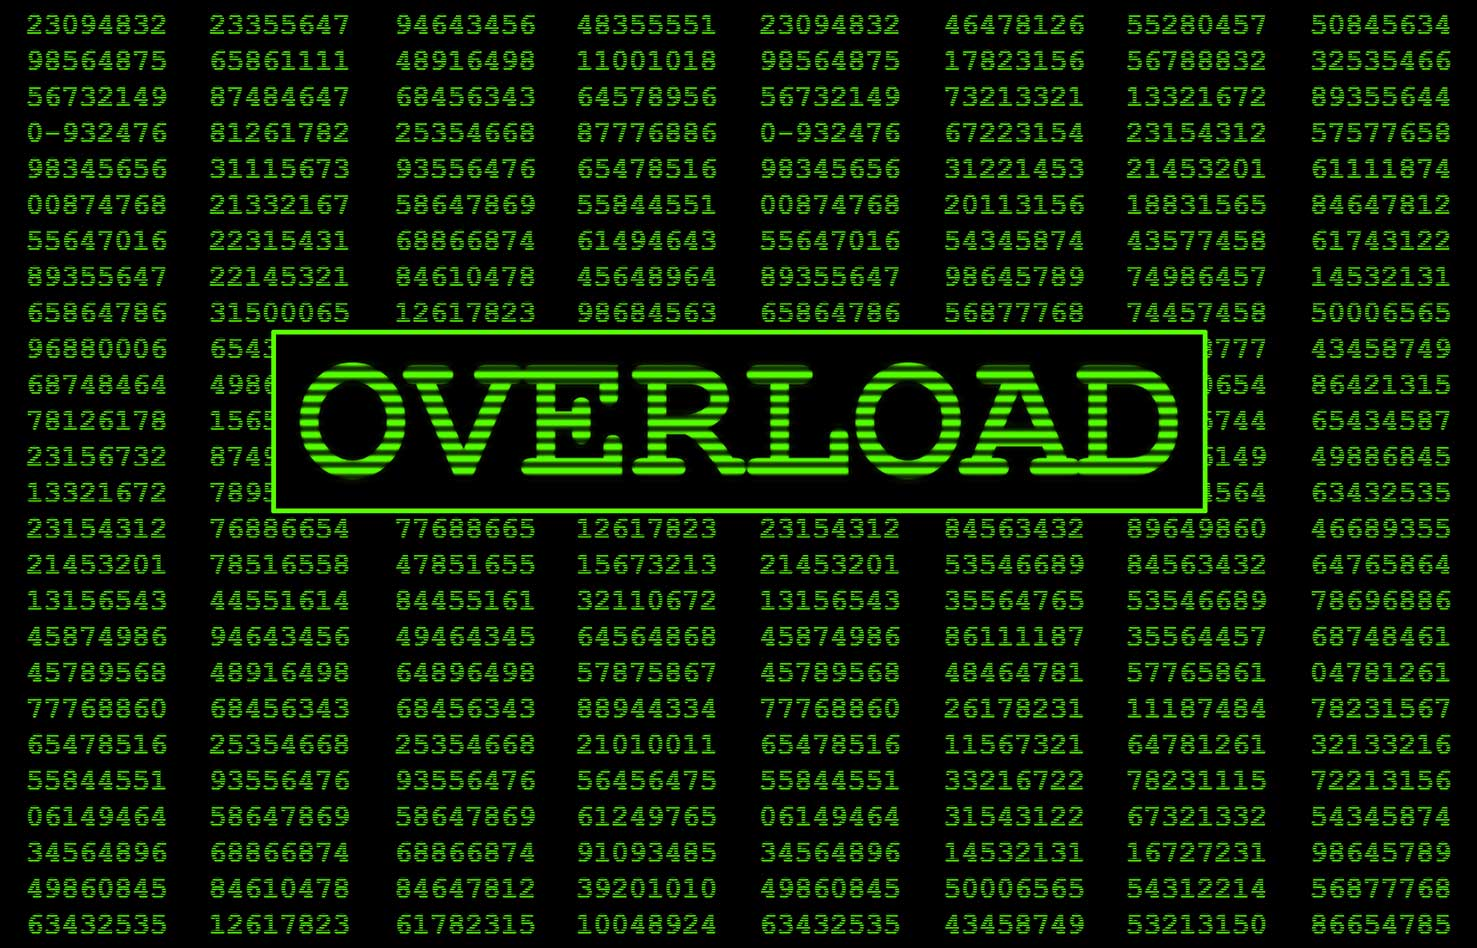 Screen message data overload